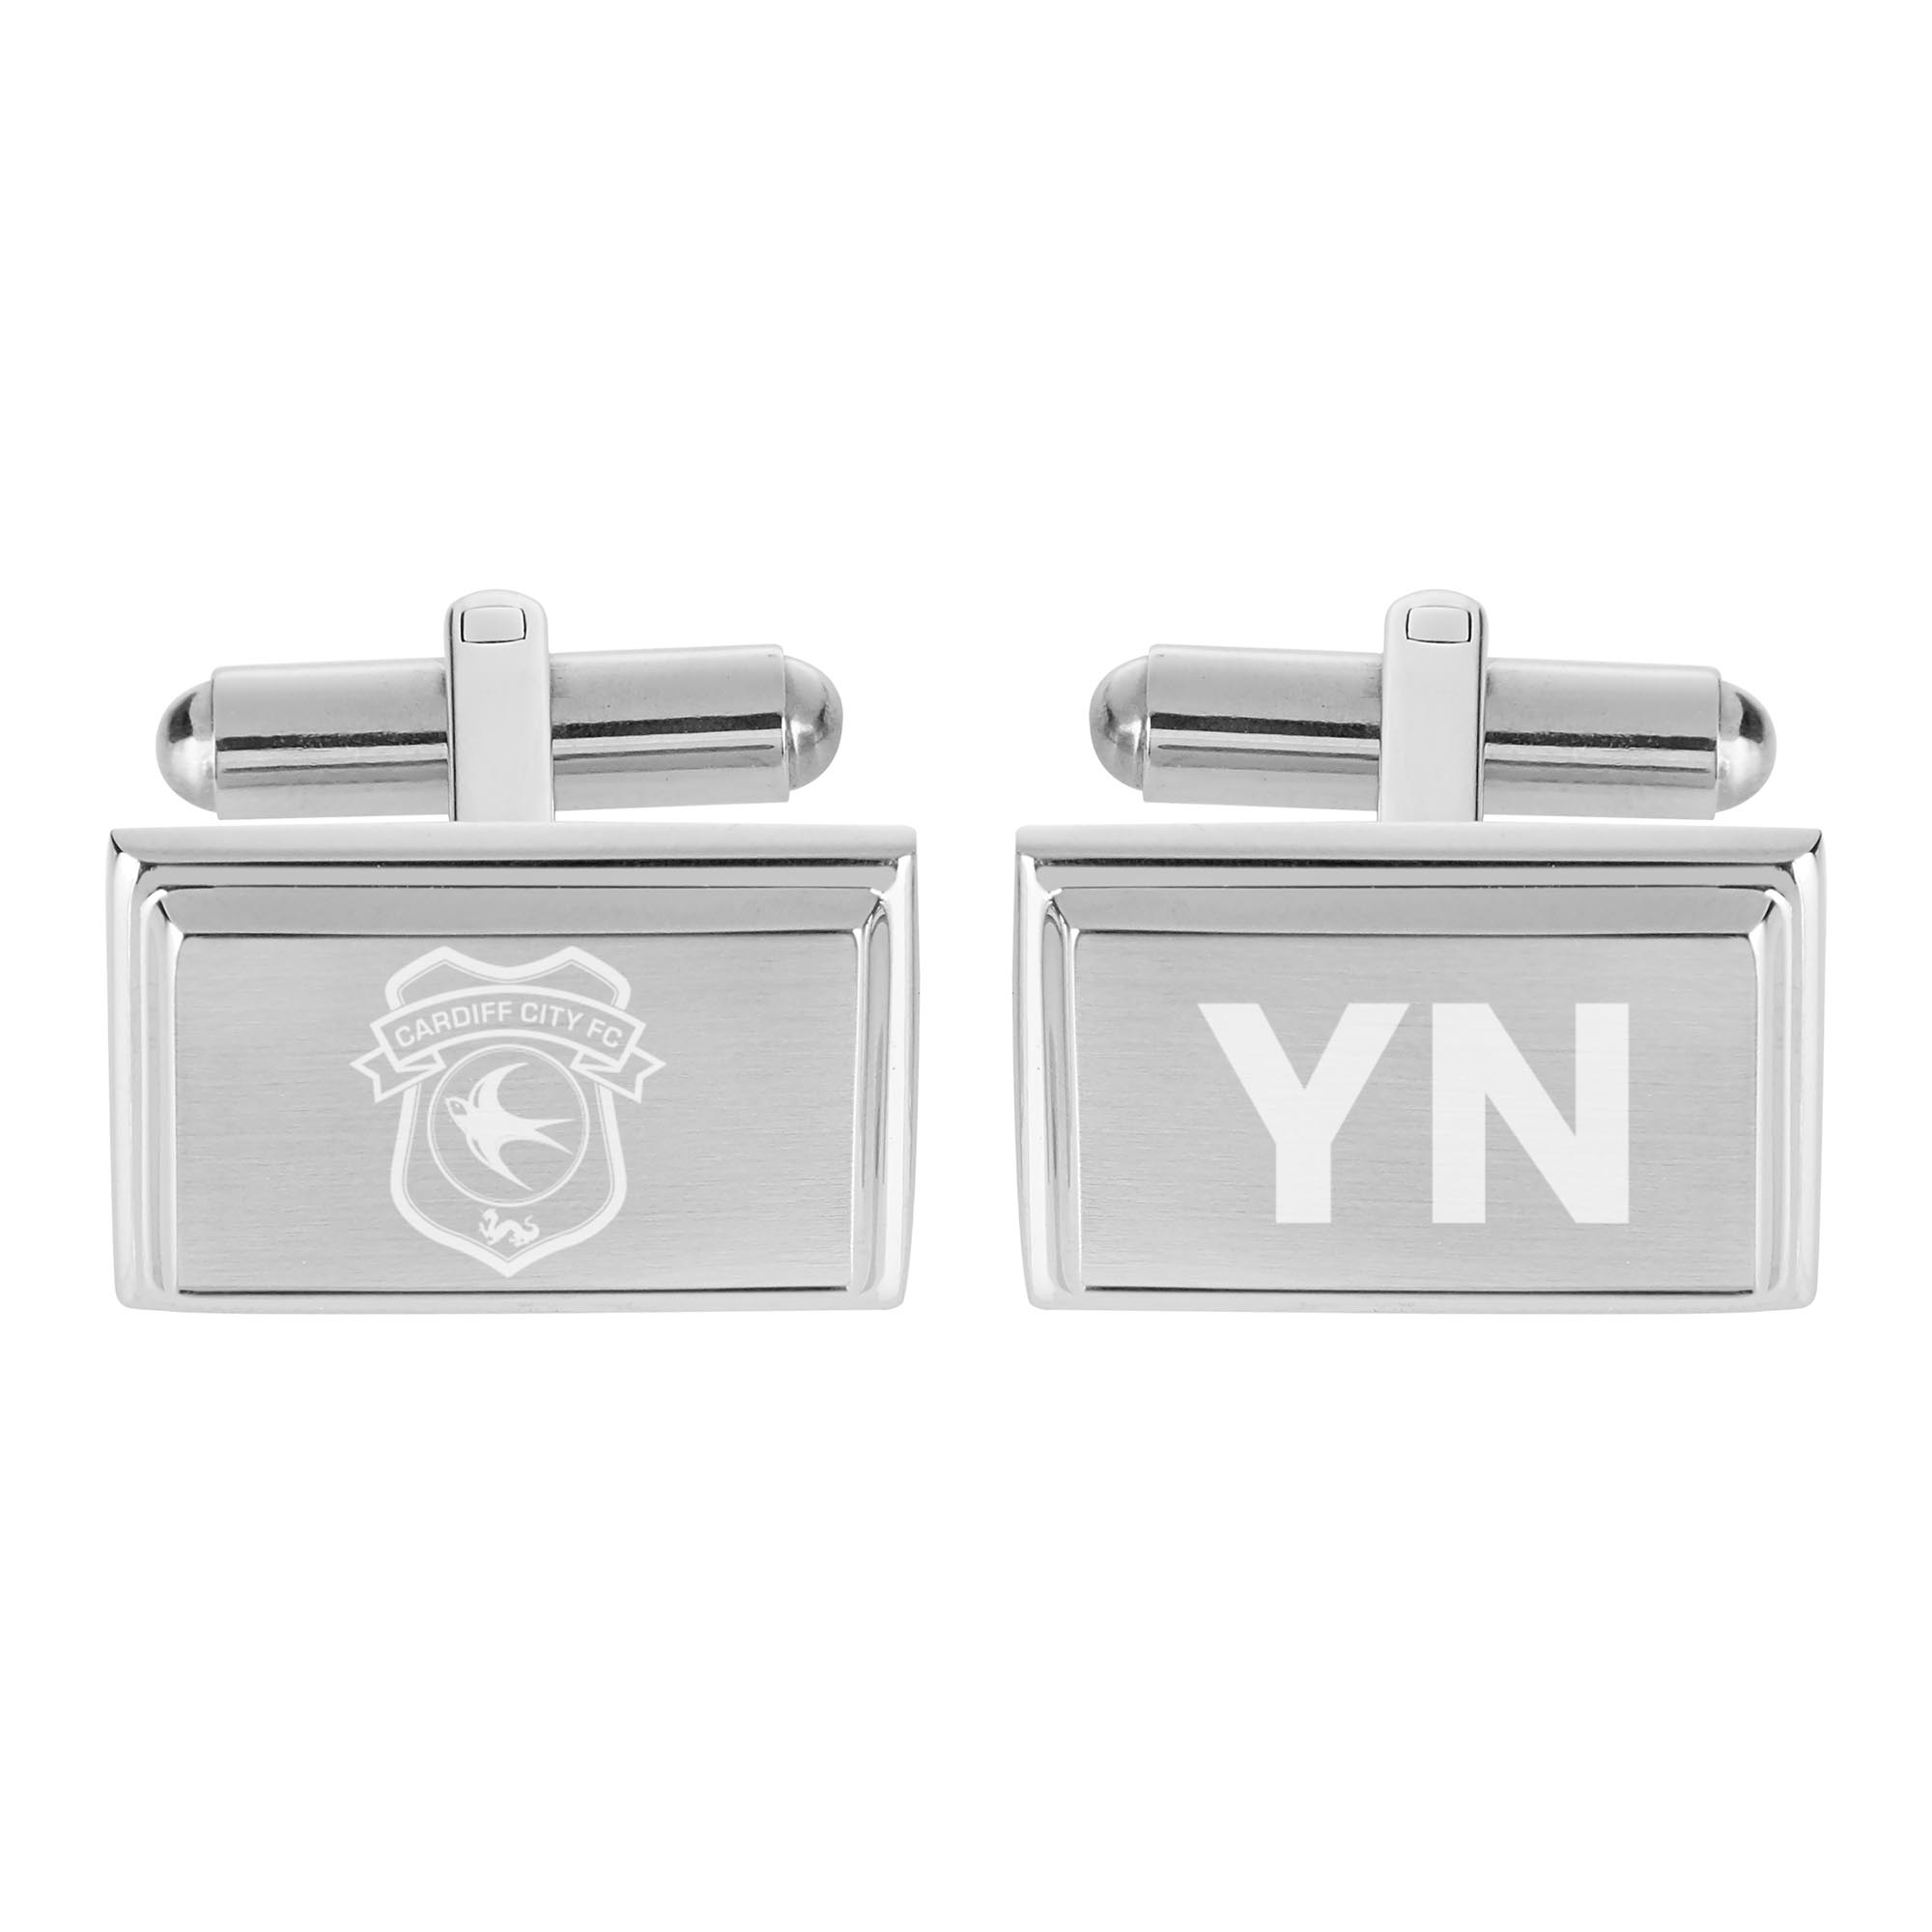 Cardiff City FC Crest Cufflinks